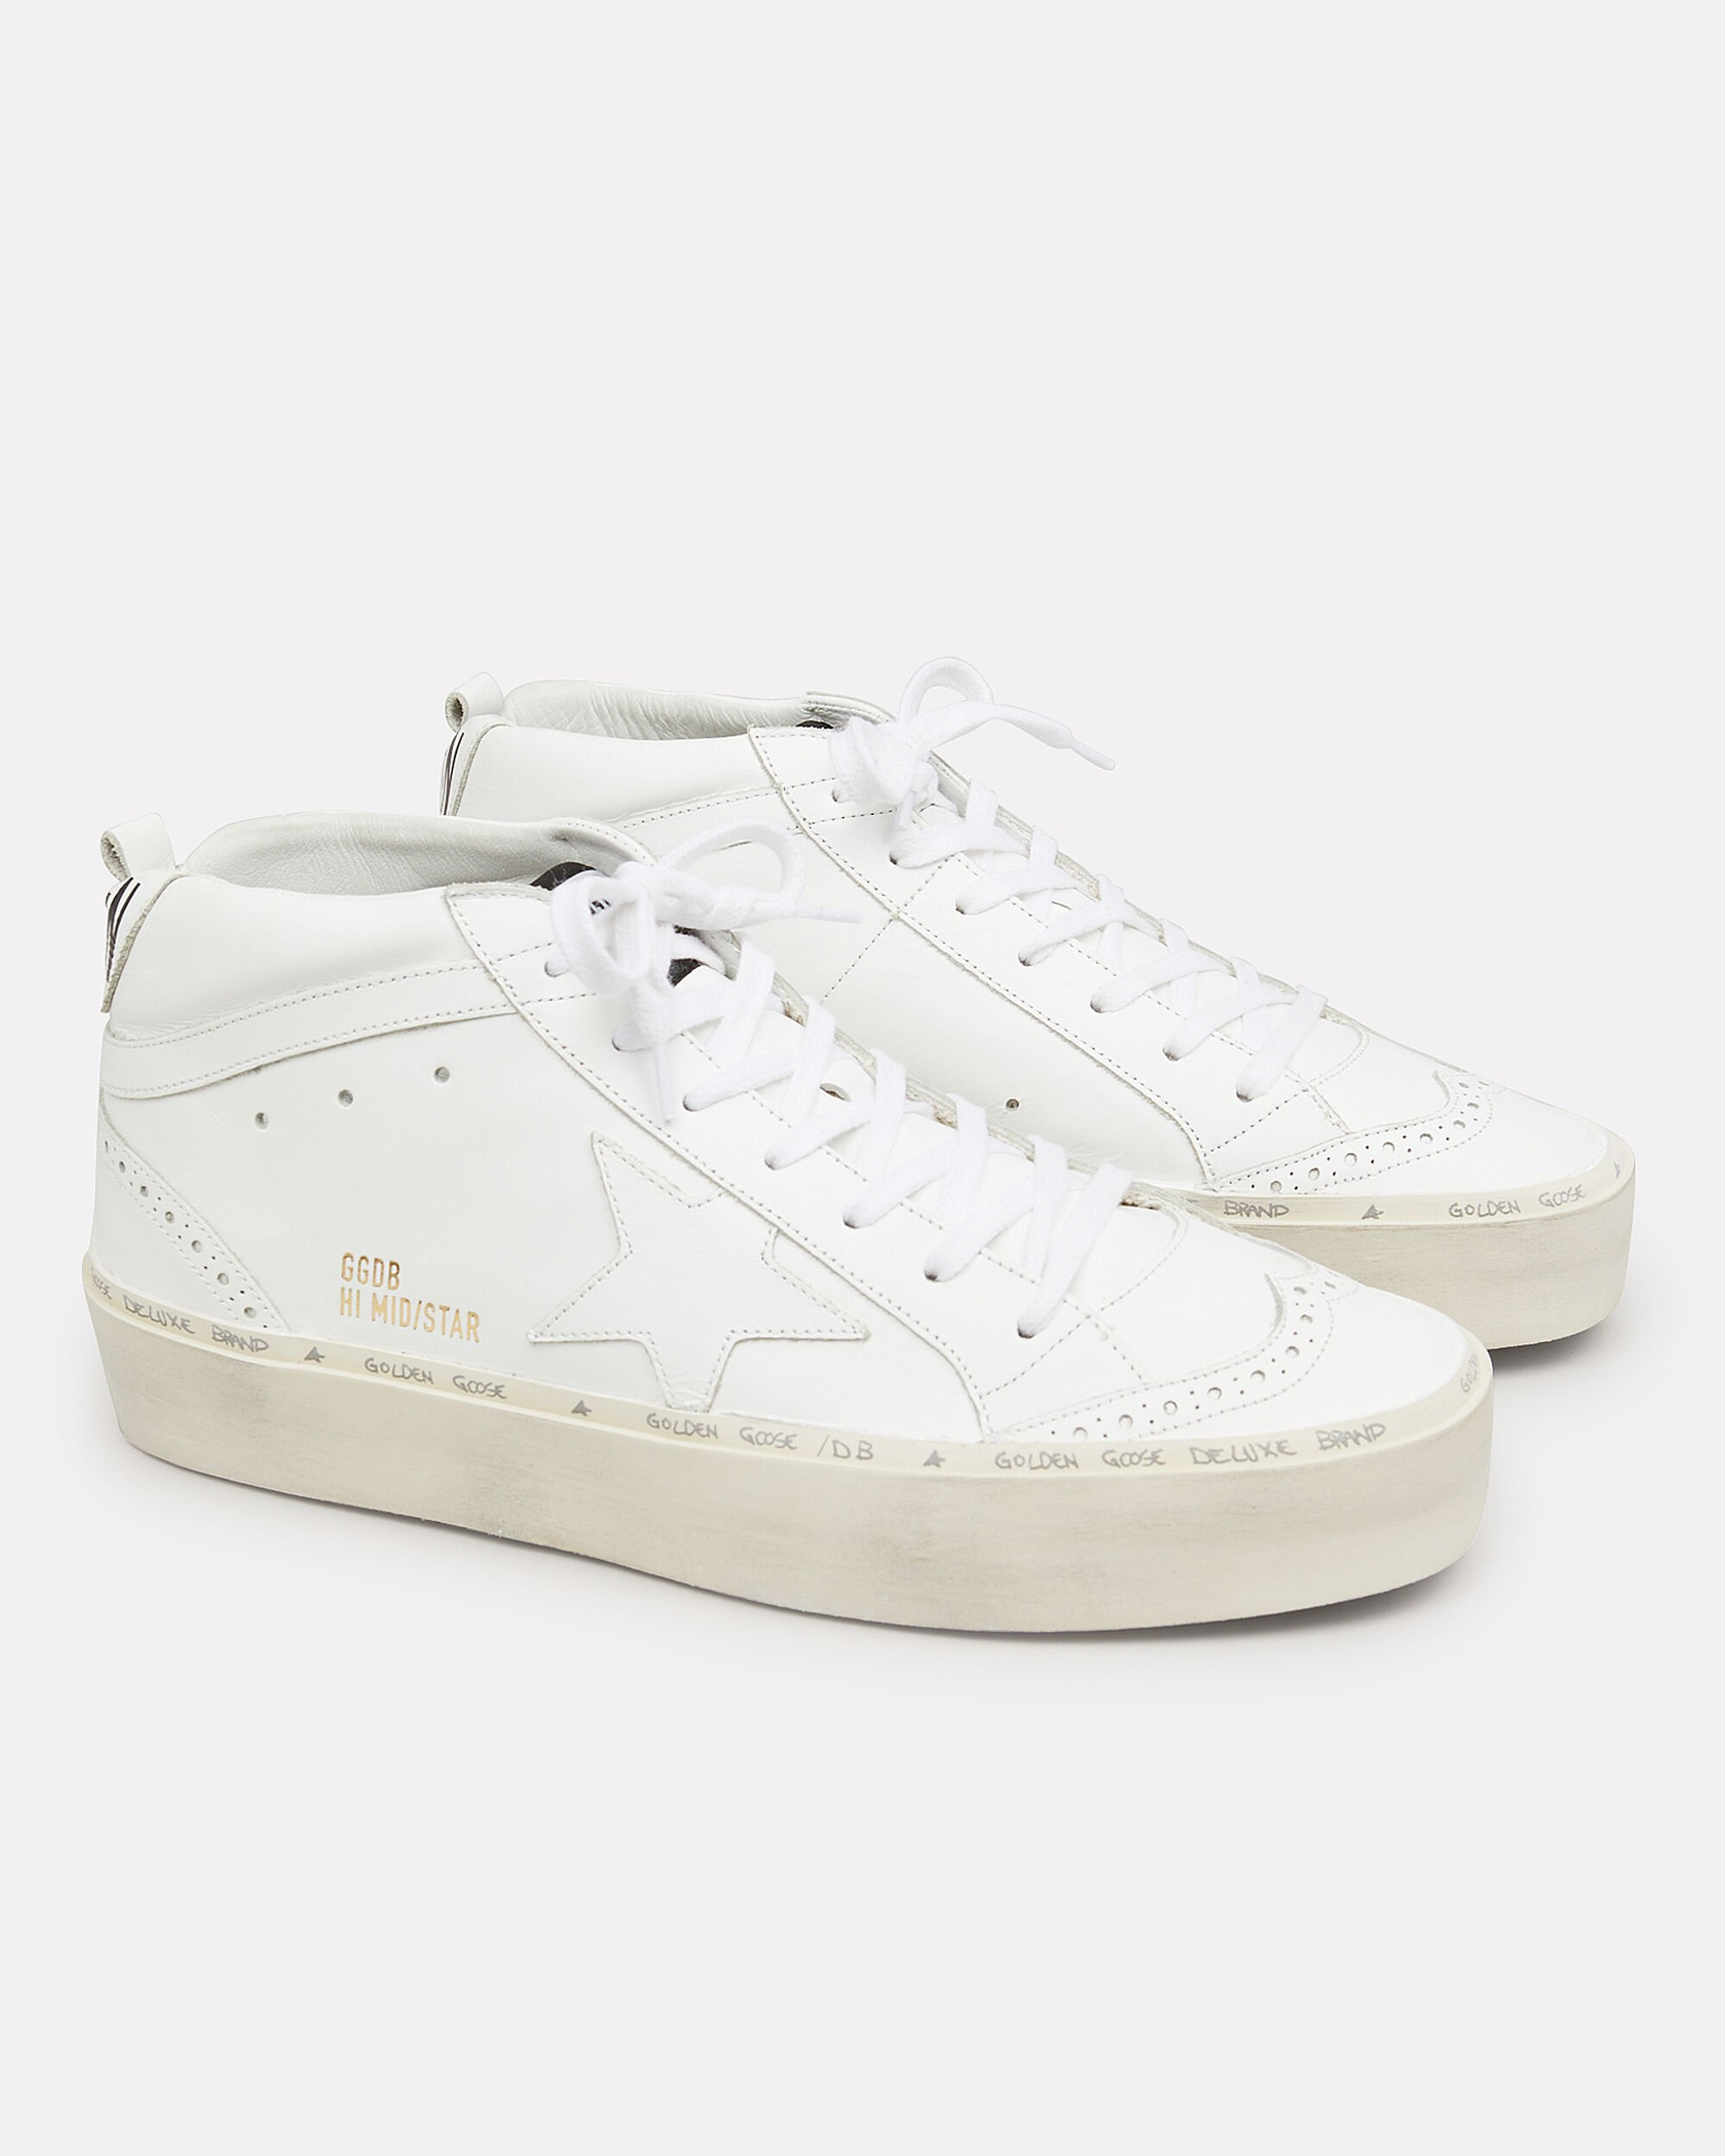 Hi Mid Star White Leather Platform Sneakers, WHITE, hi-res